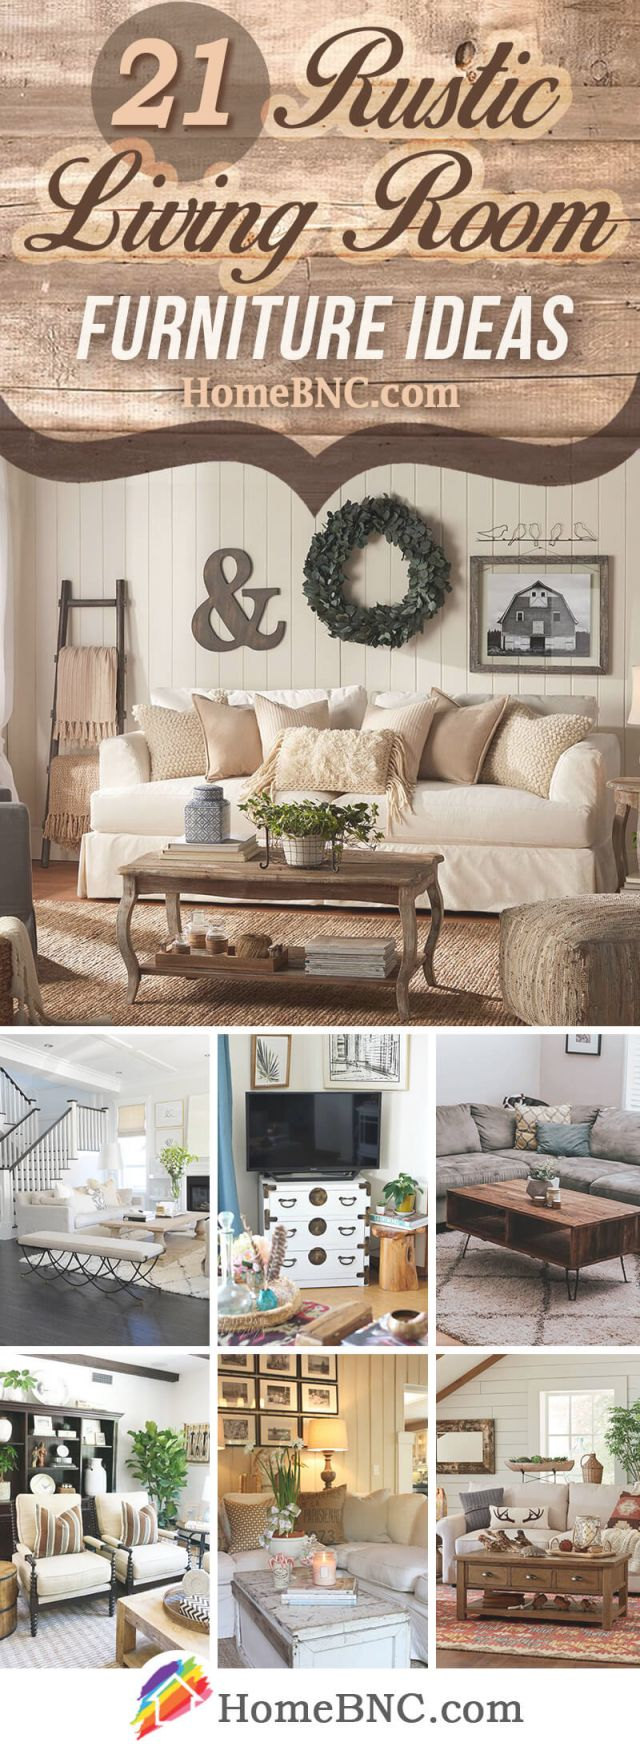 21 Best Rustic Living Room Furniture Ideas And Designs For 2019 with Rustic Living Room Furniture